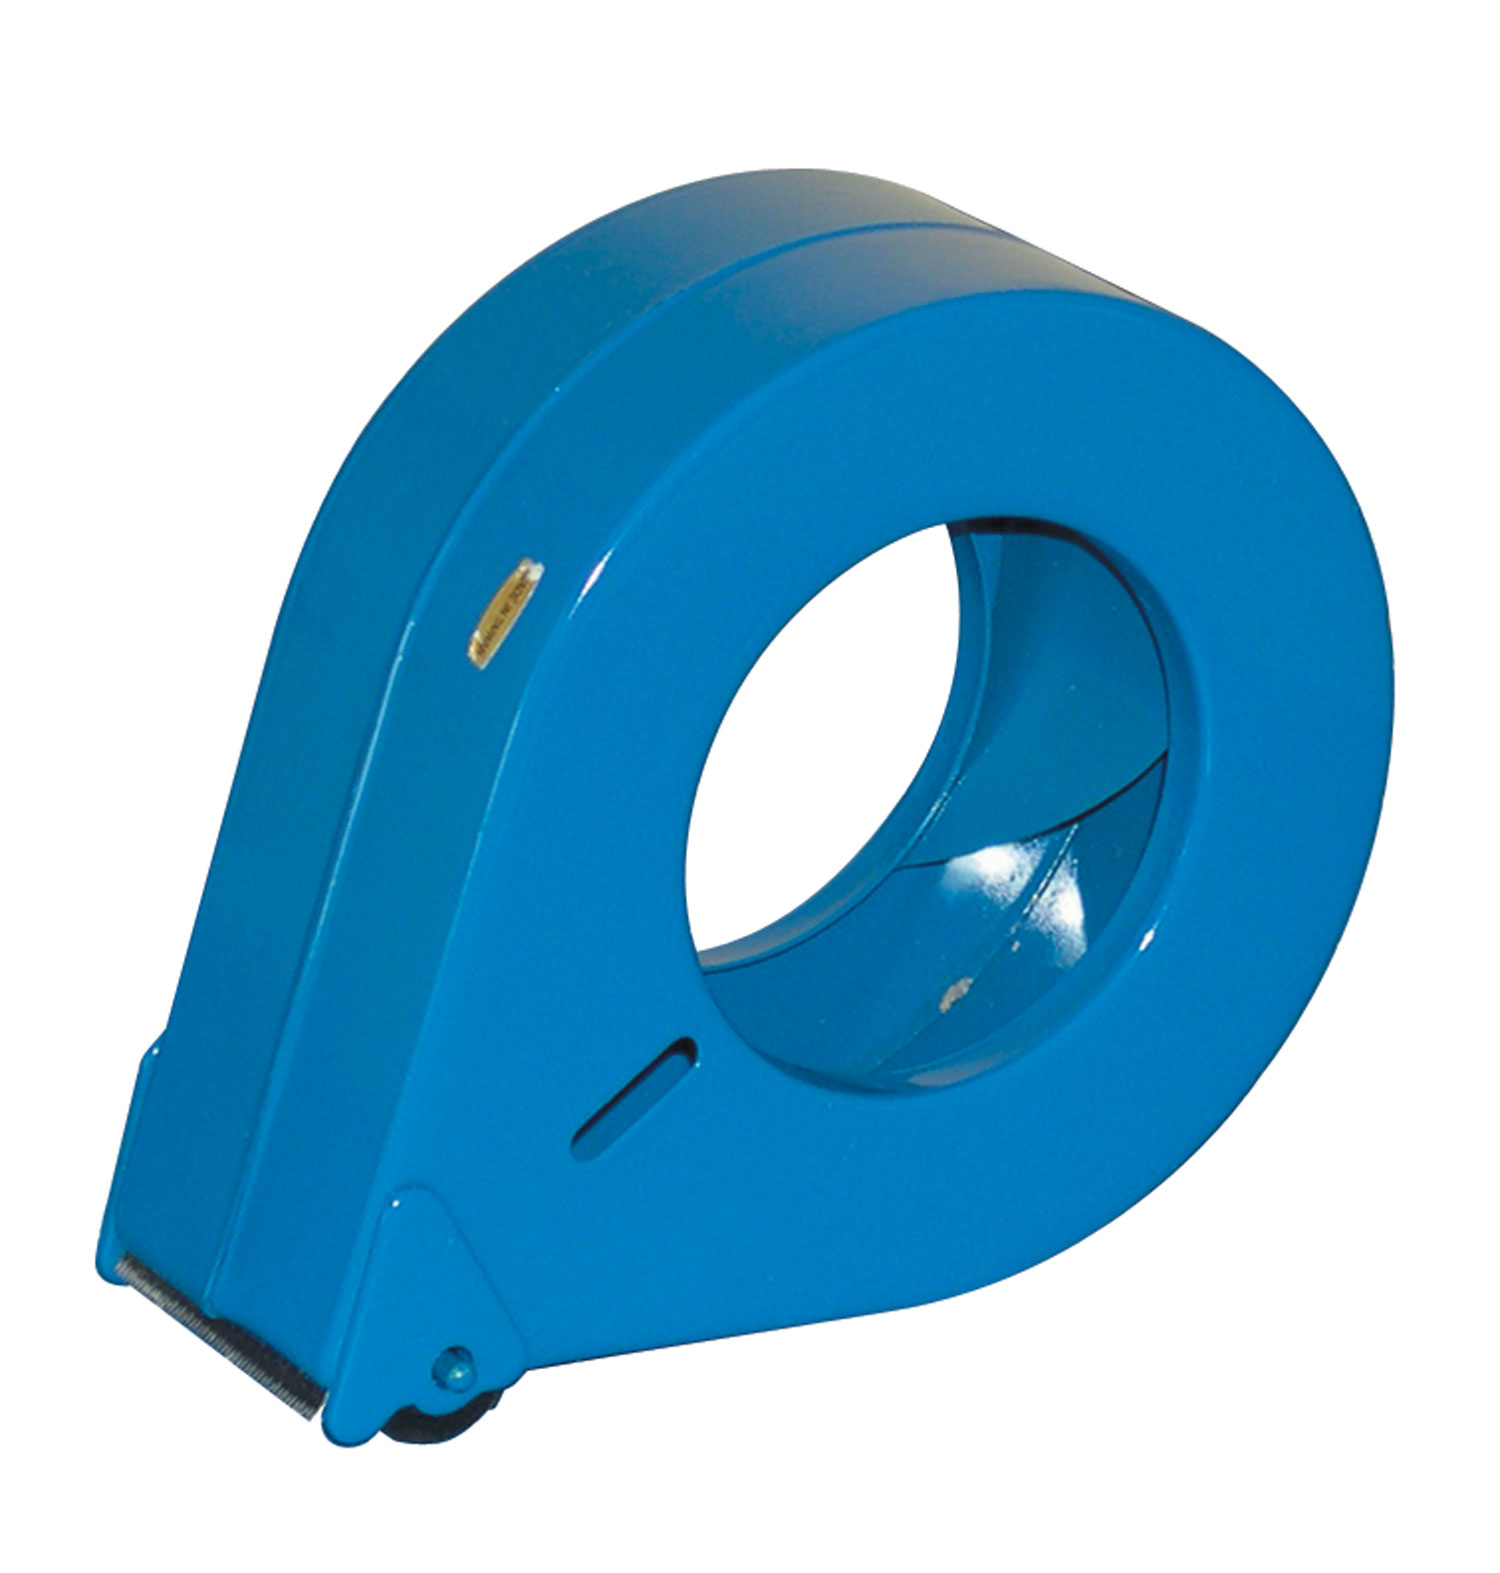 Enclosed Hand Held Tape Dispenser for 50mm wide Cross weave Tapes